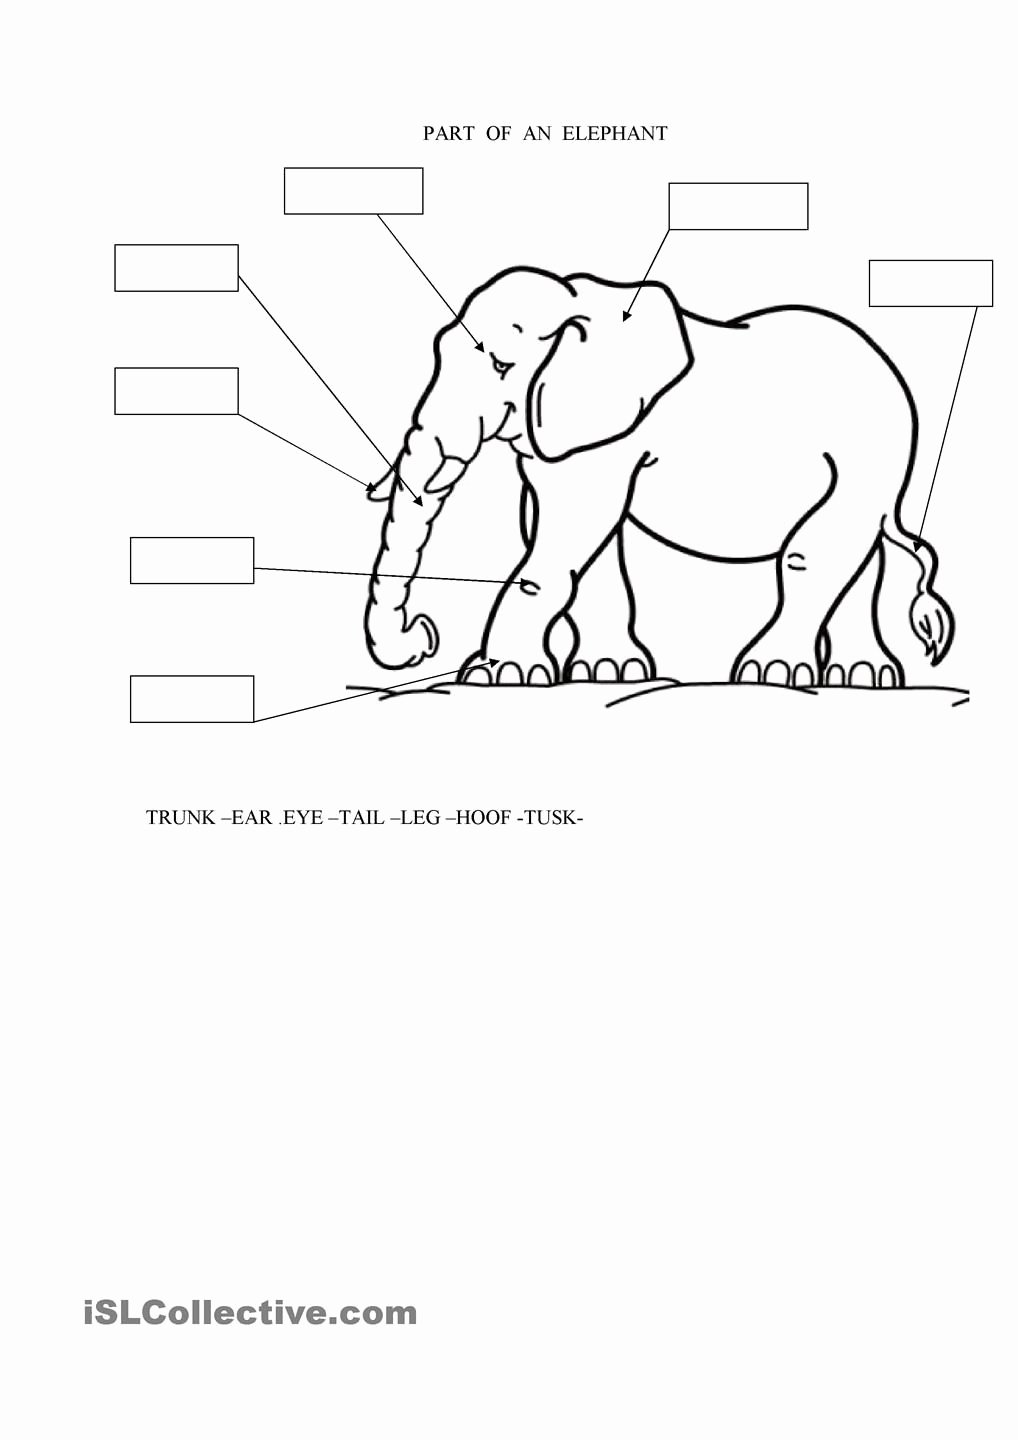 Elephant Worksheets for Preschoolers Printable Parts Of An Elephant